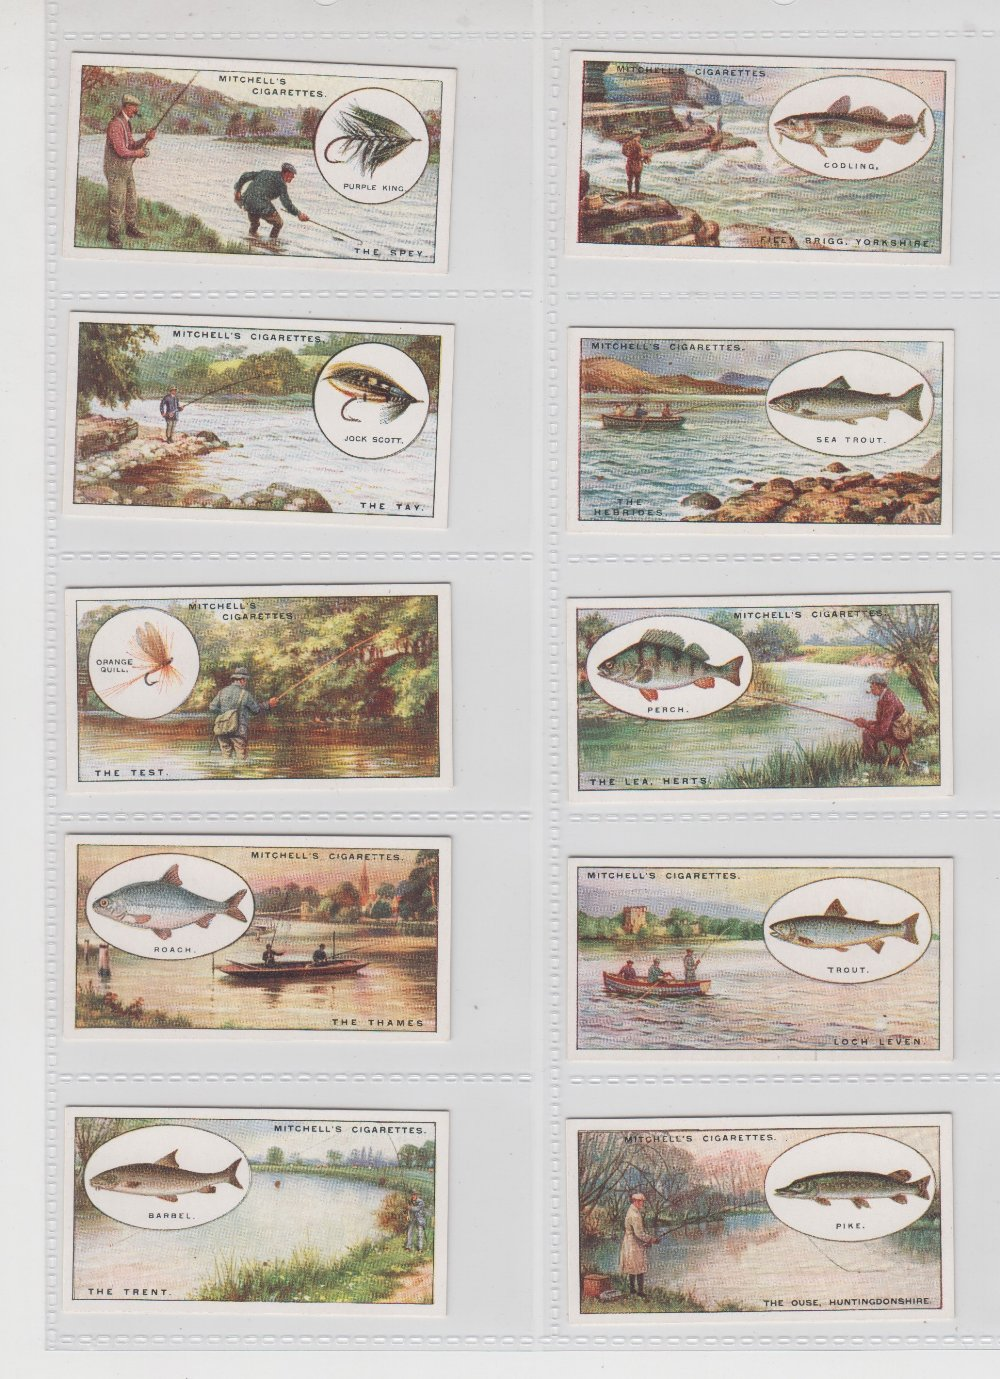 Lot 217 - Cigarette cards, Mitchell's, Angling (set, 25 cards) (vg/ex)